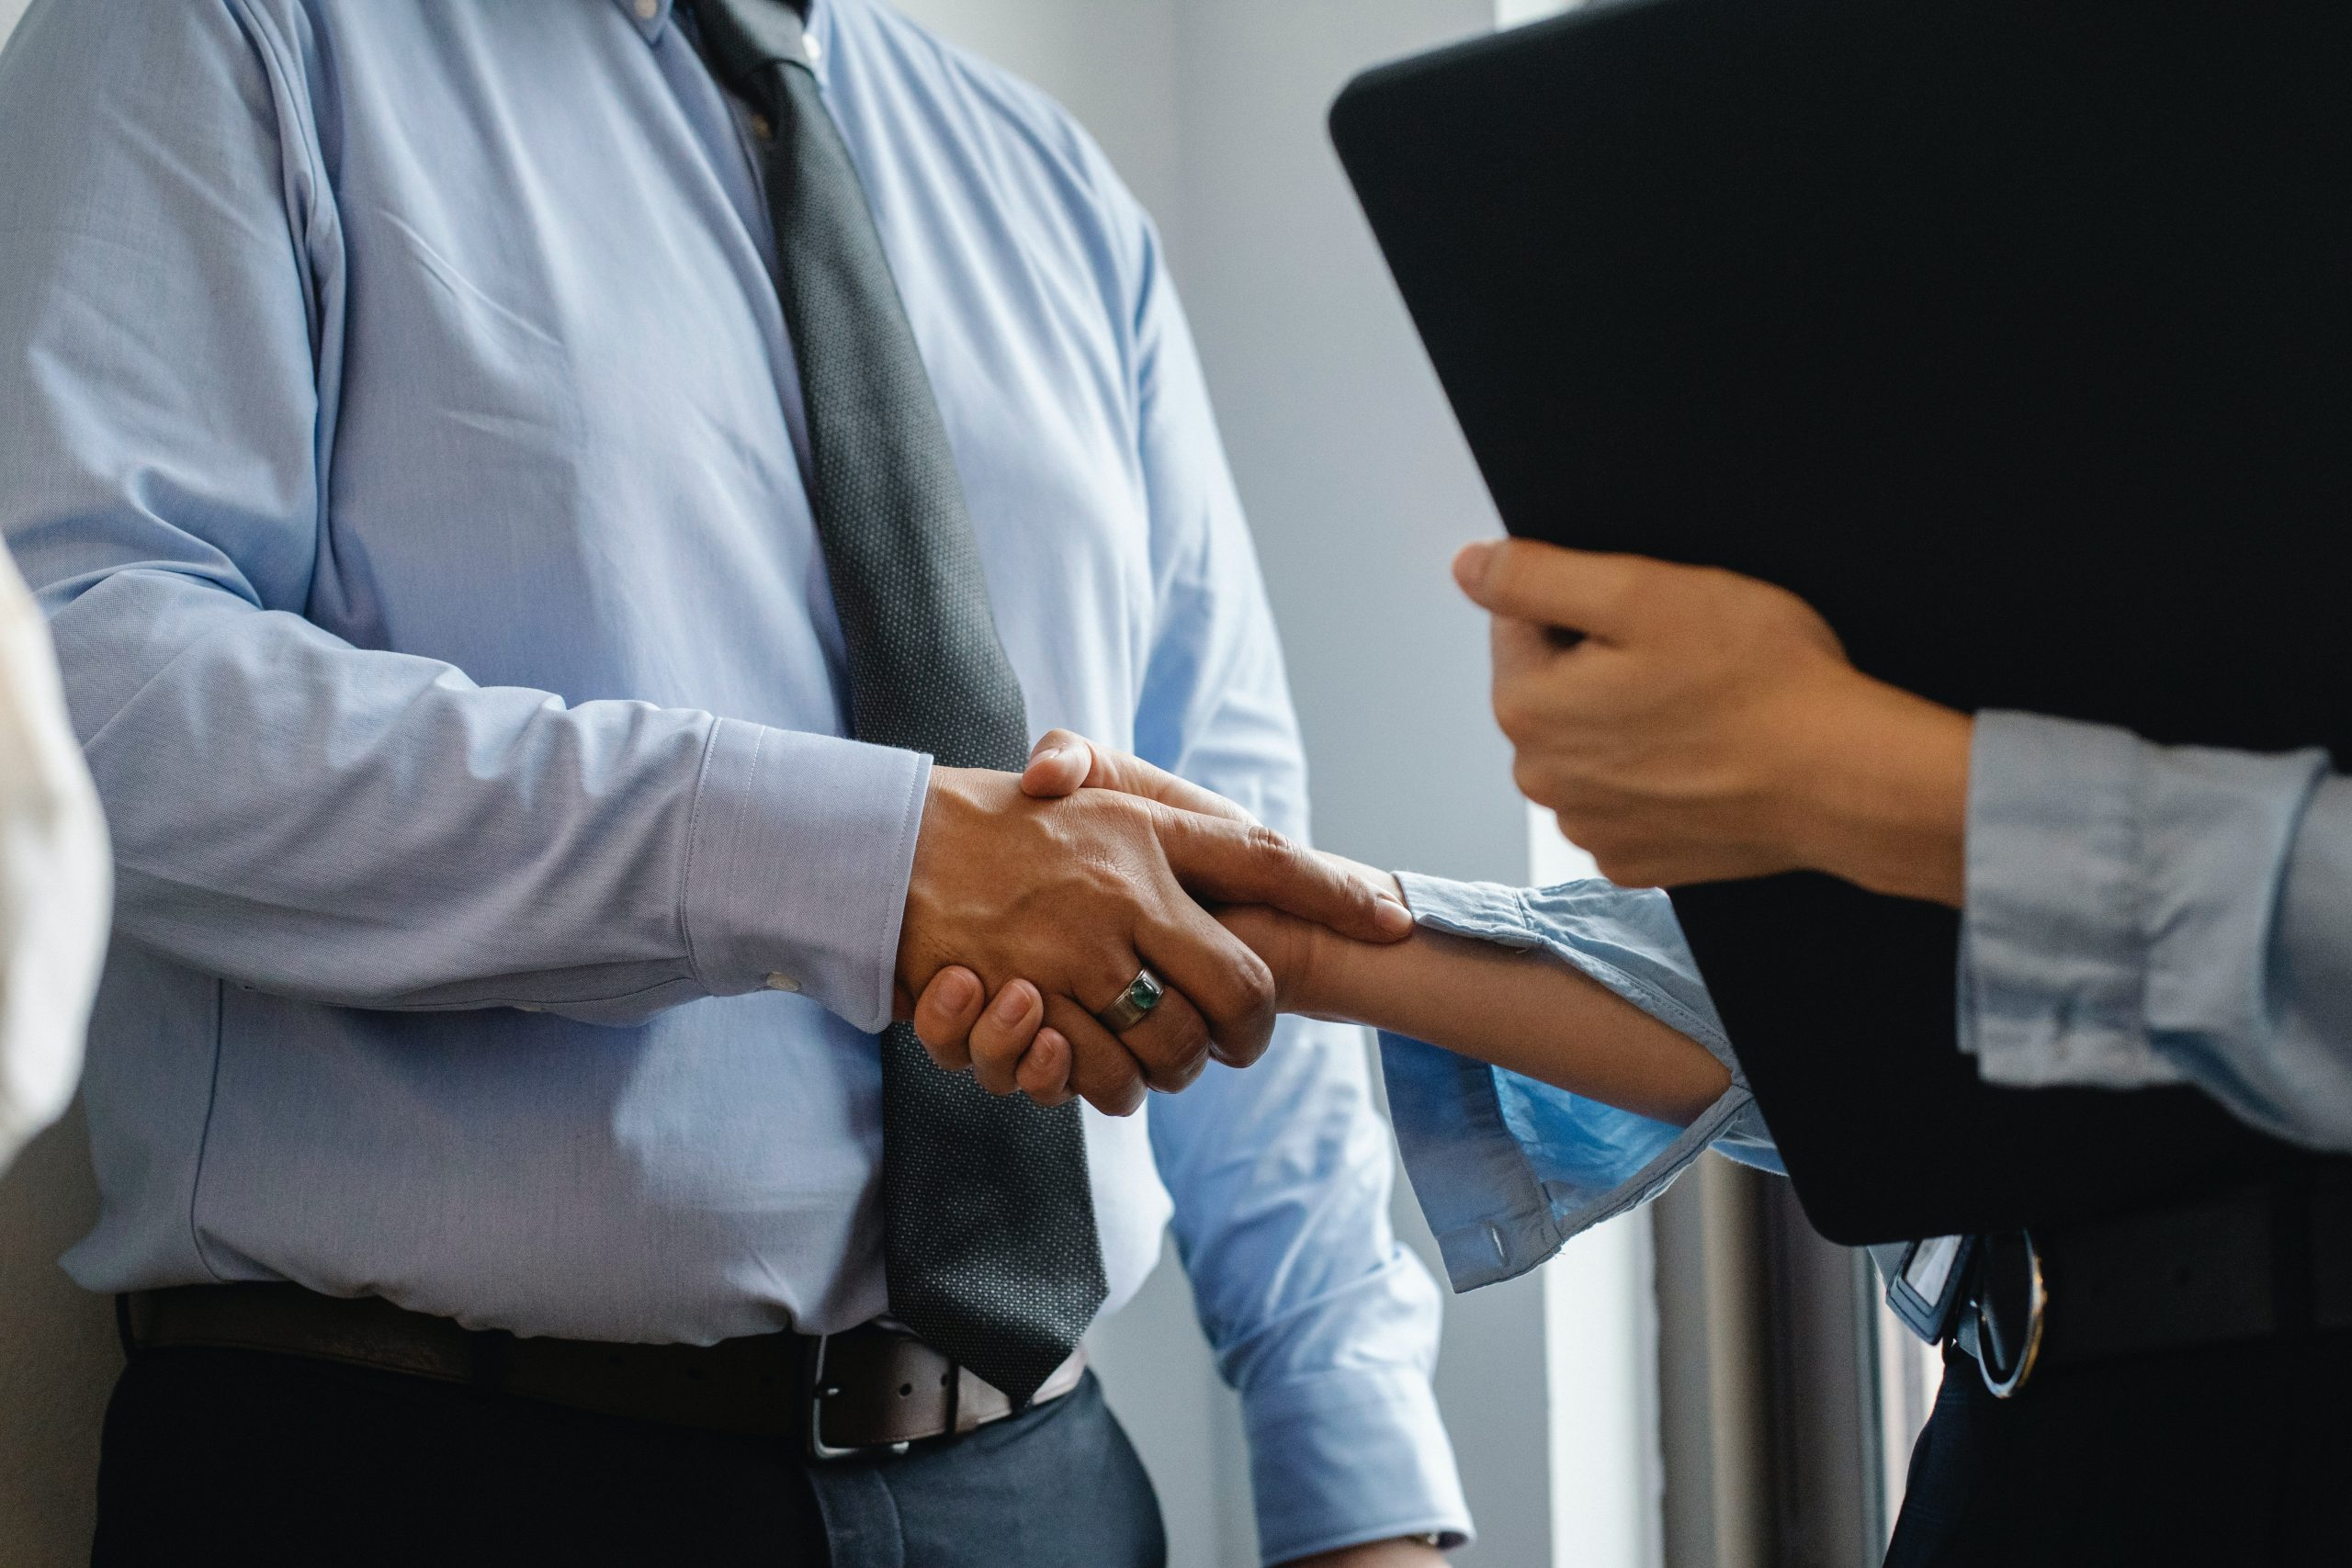 Operations consultants shaking hands.